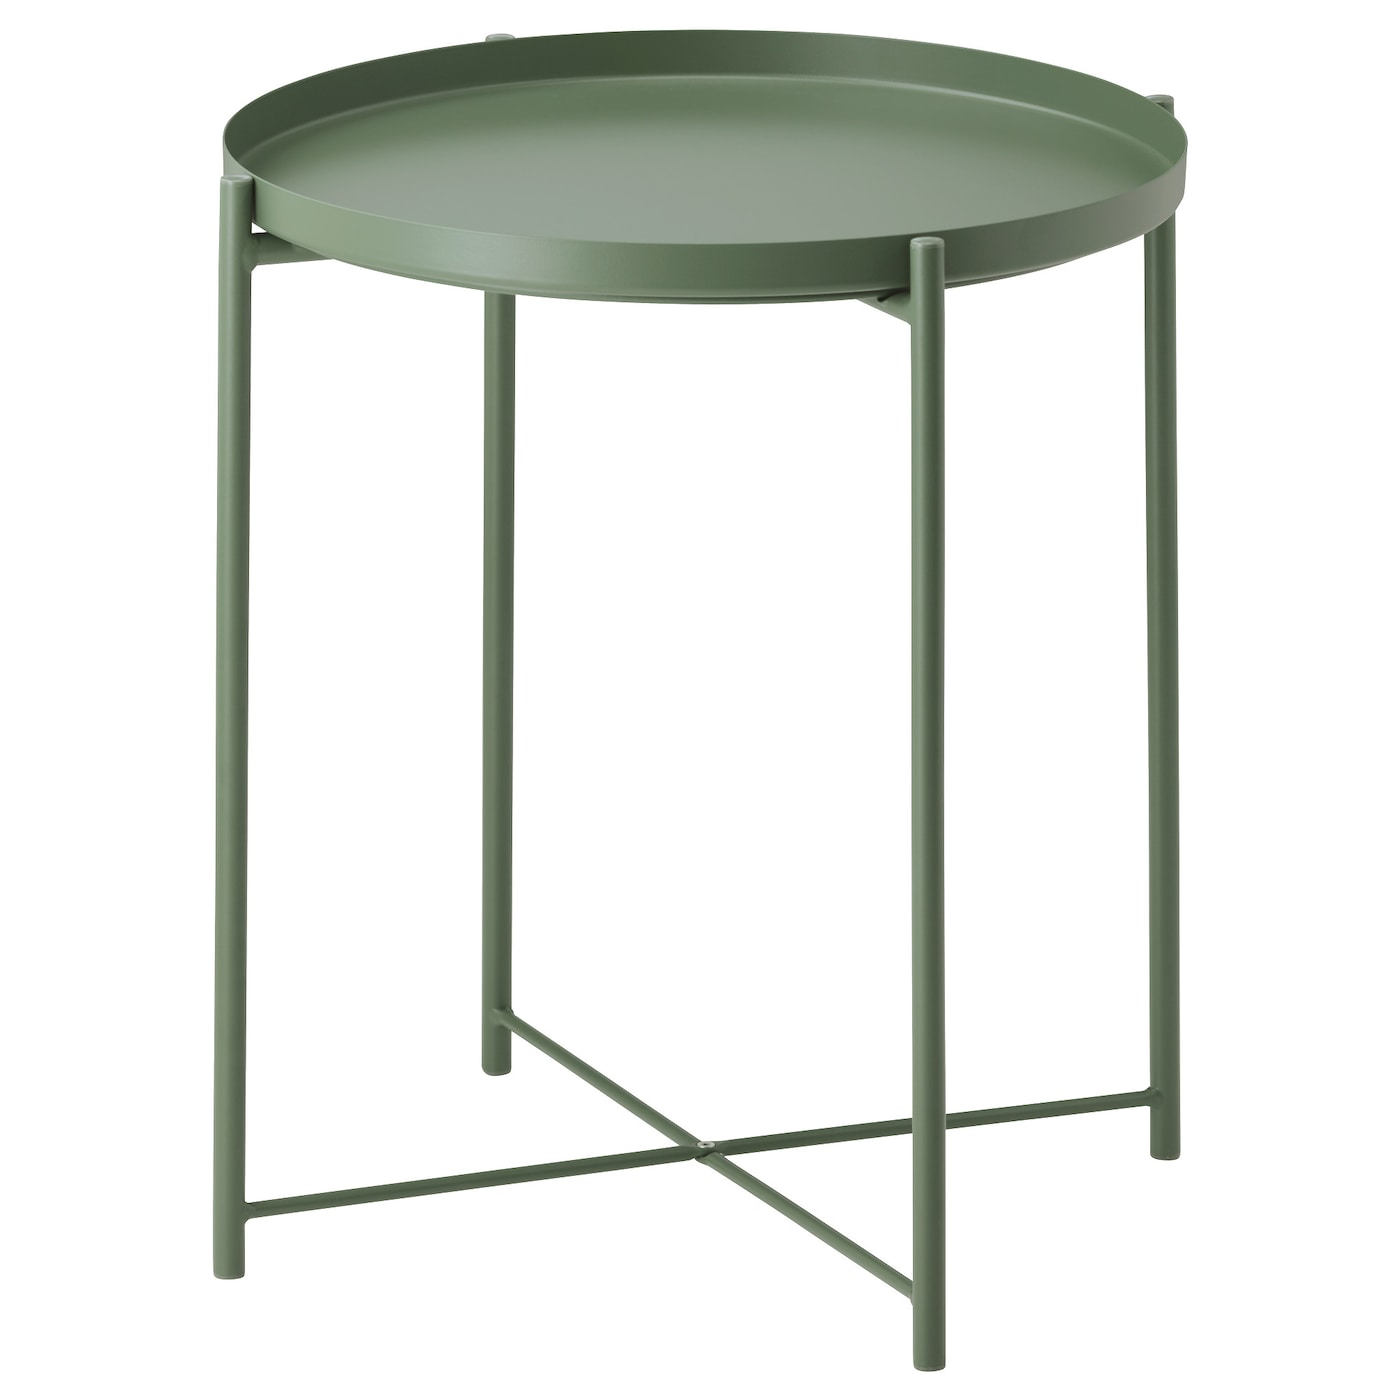 Gladom tray table dark green 45x53 cm ikea for Tables de nuit ikea